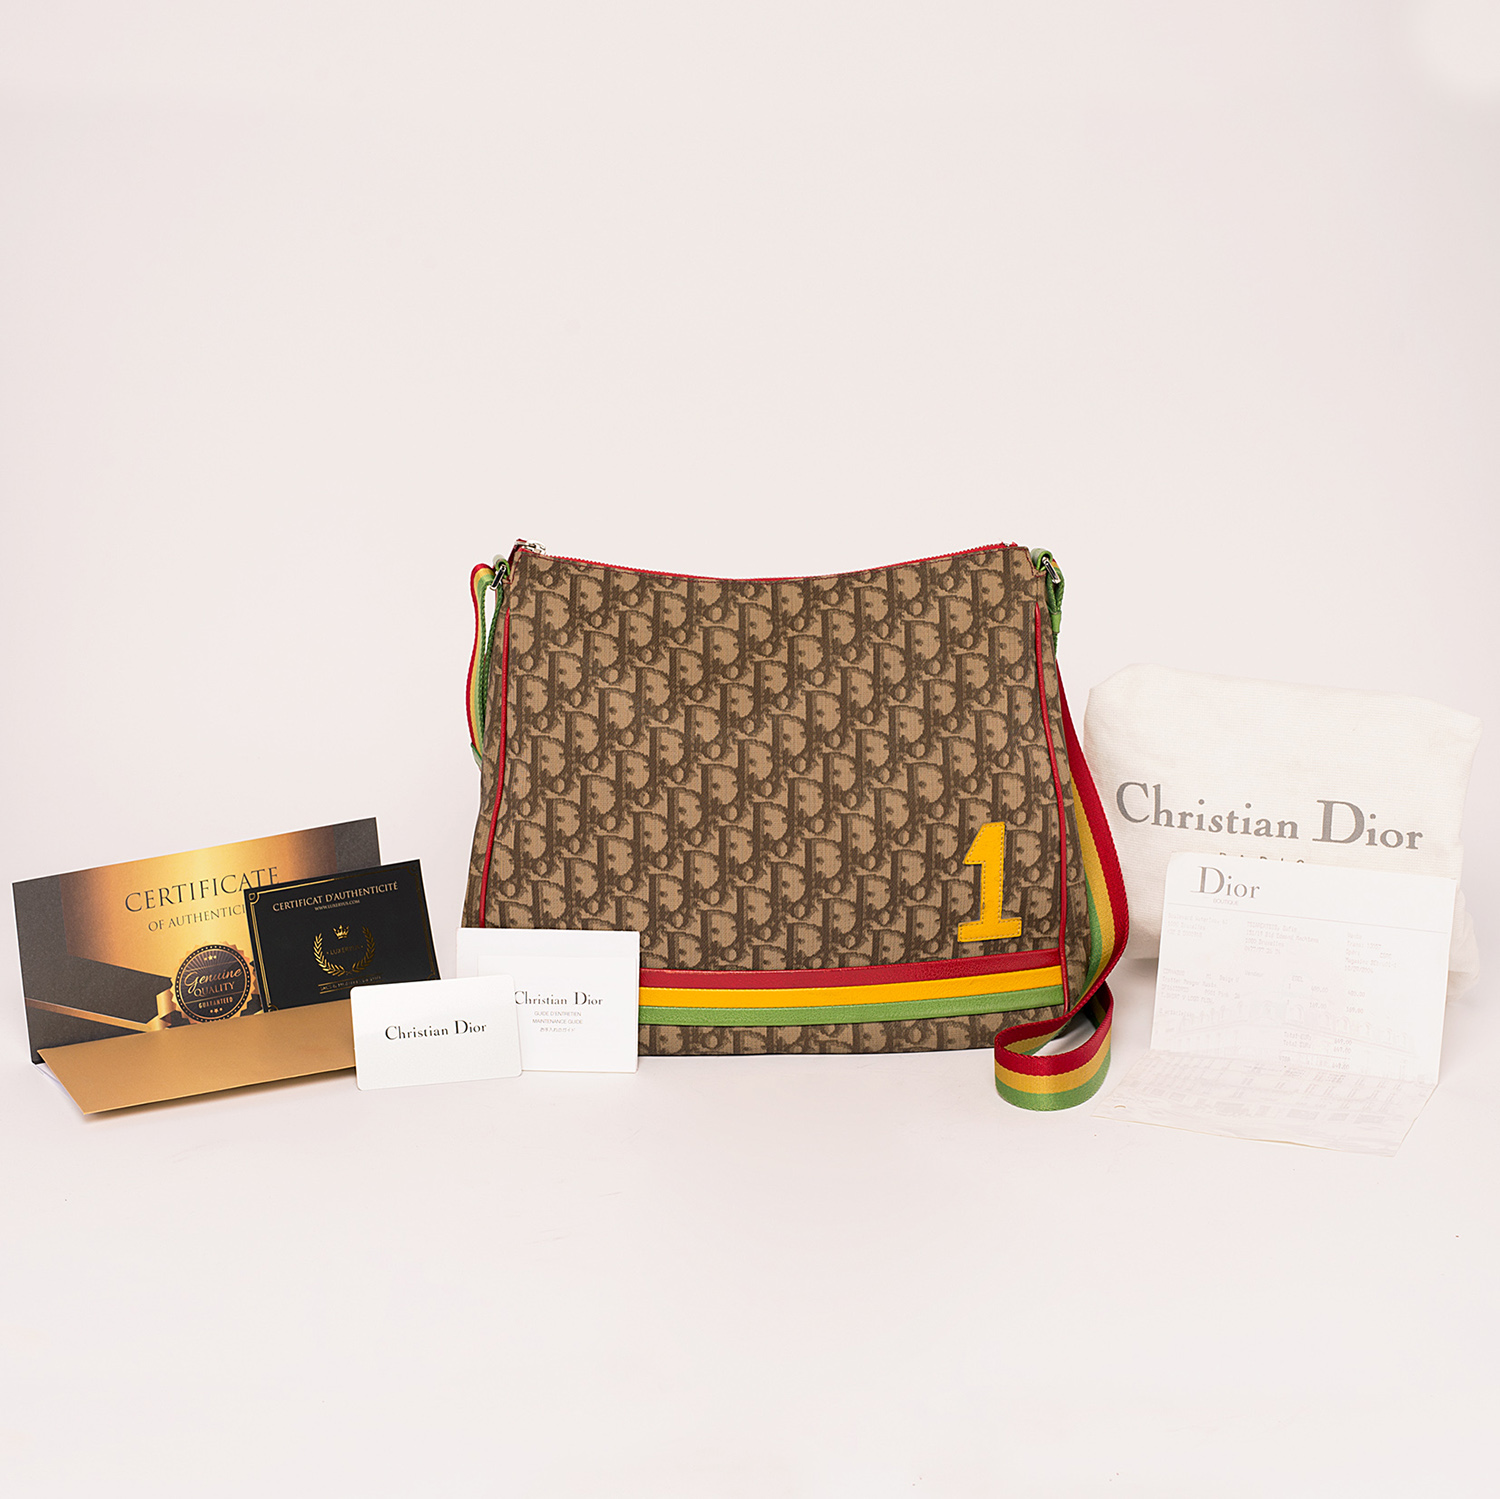 Sac de ville Christian Dior Trotter Rasta Authentique d'occasion de la grande collection John Galliano